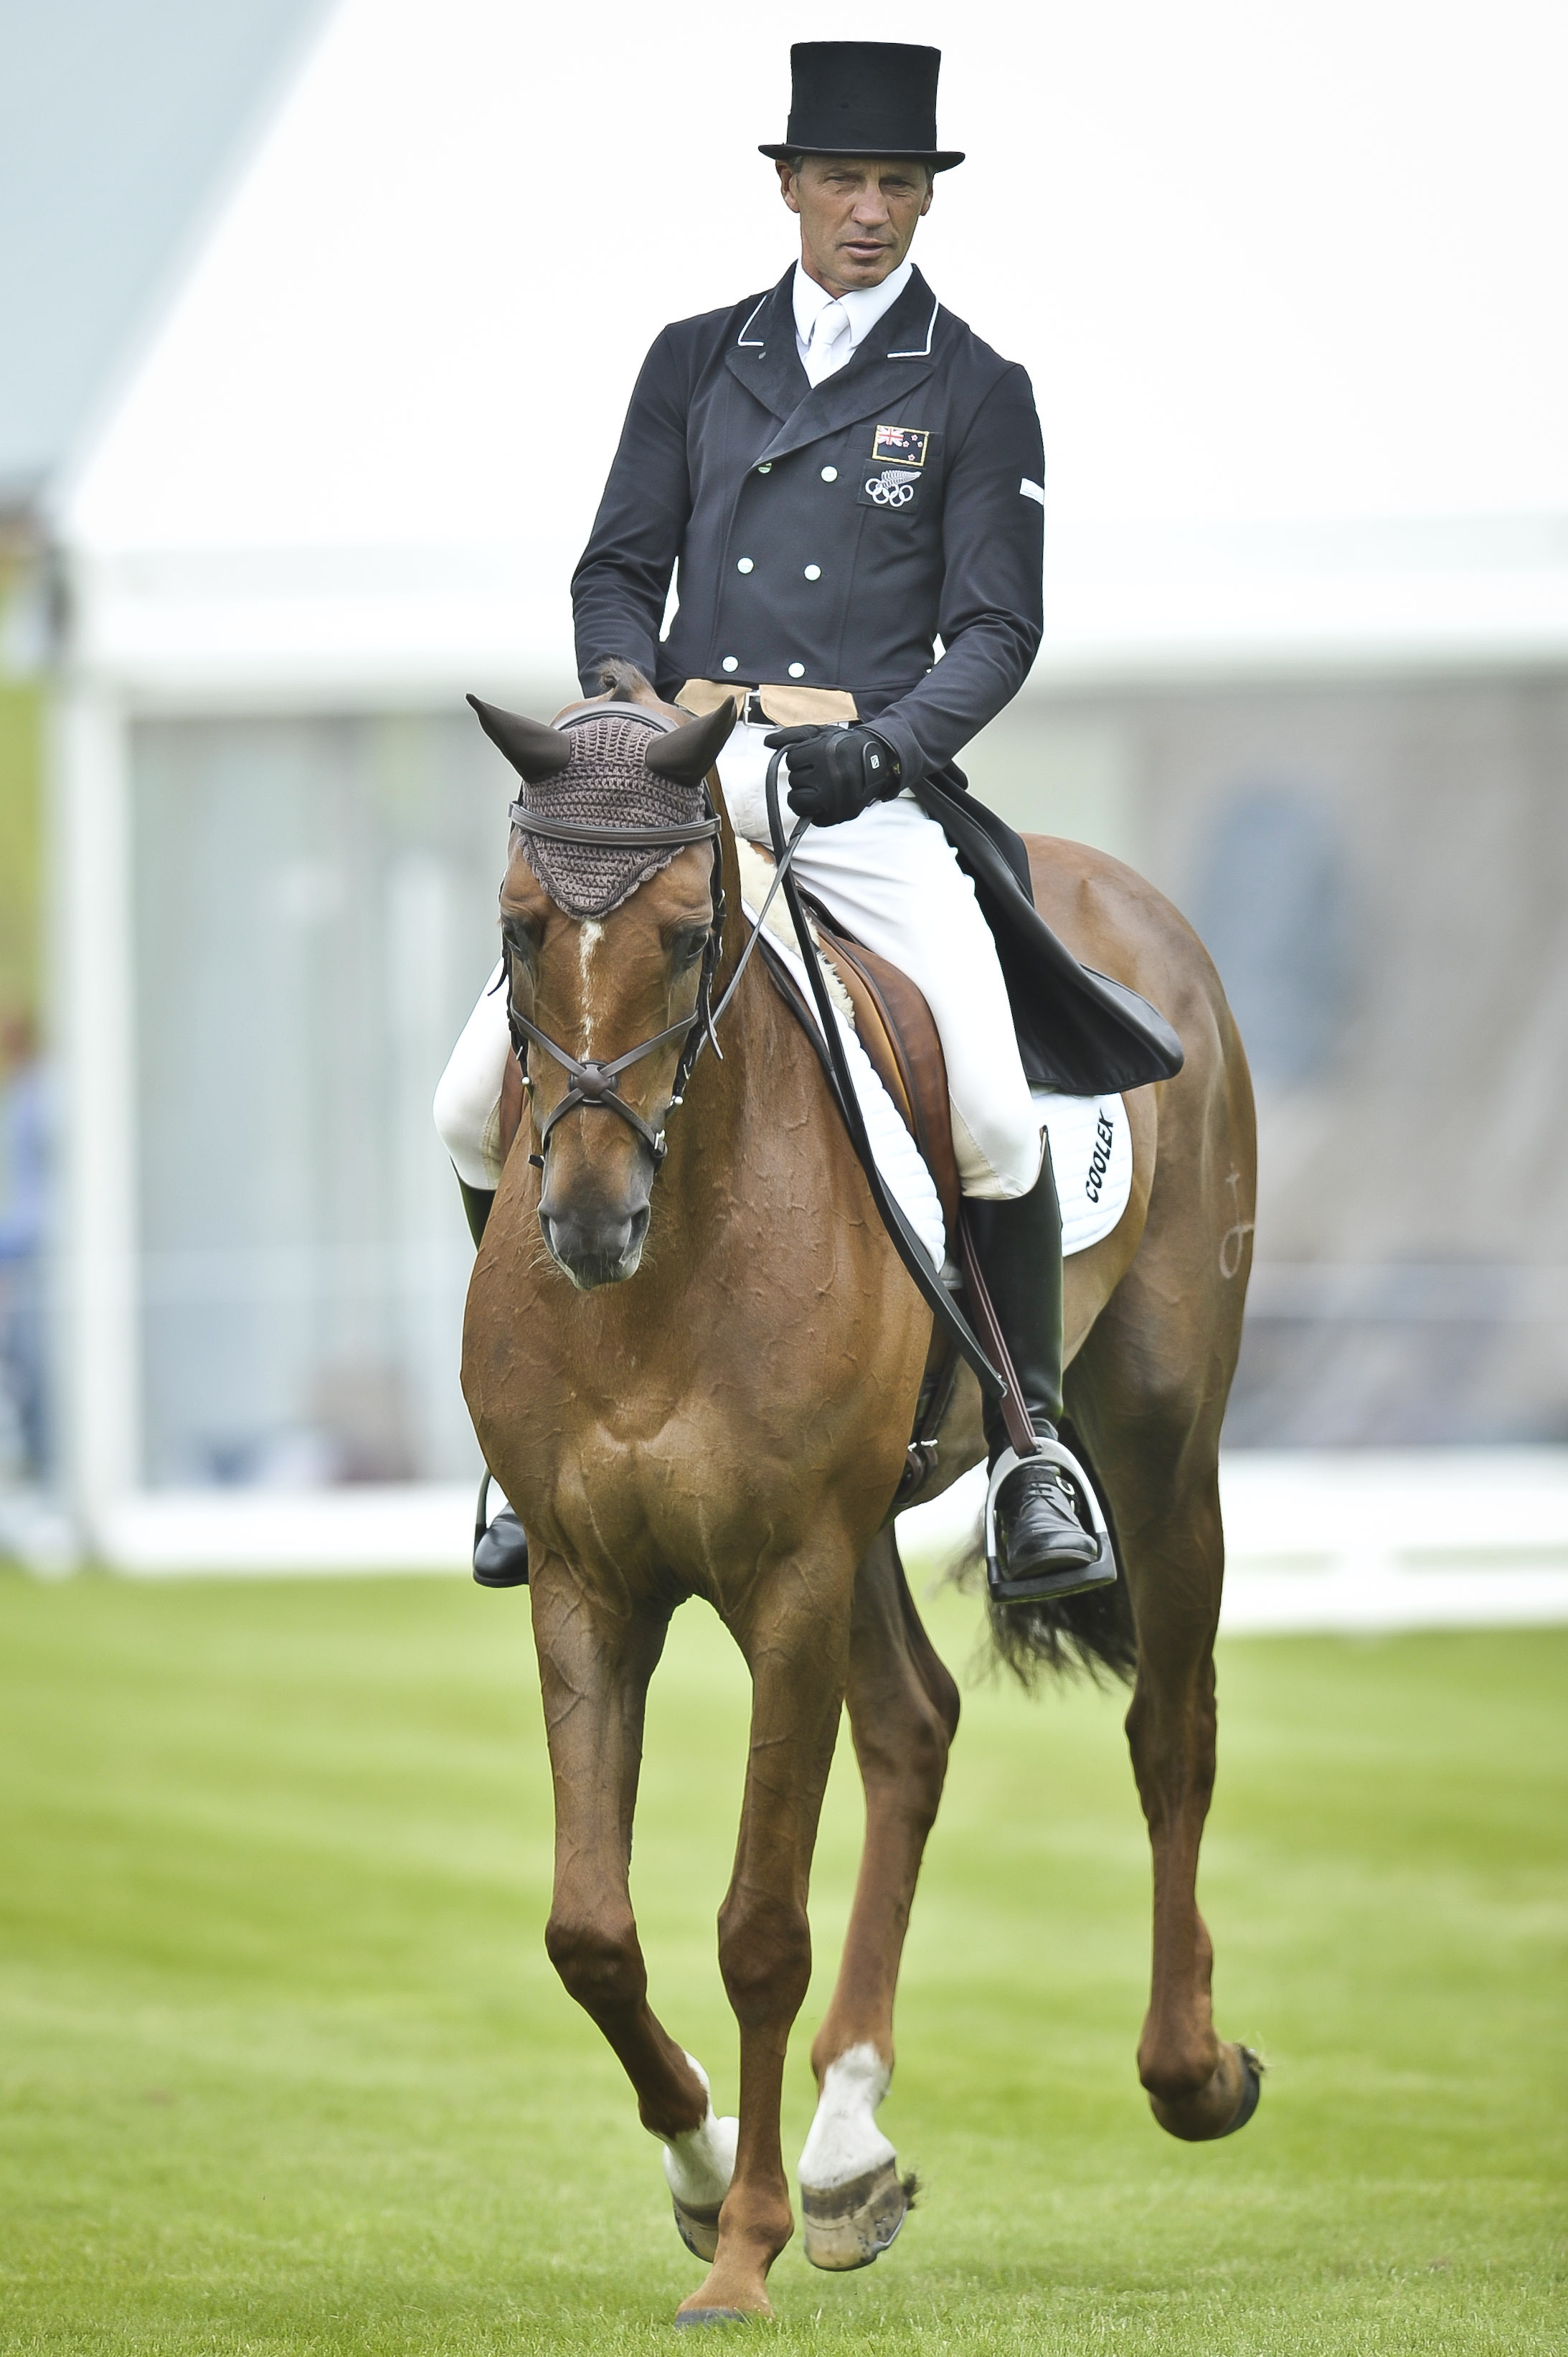 Andrew Nicholson is a favourite at the Barbury International Horse Trials